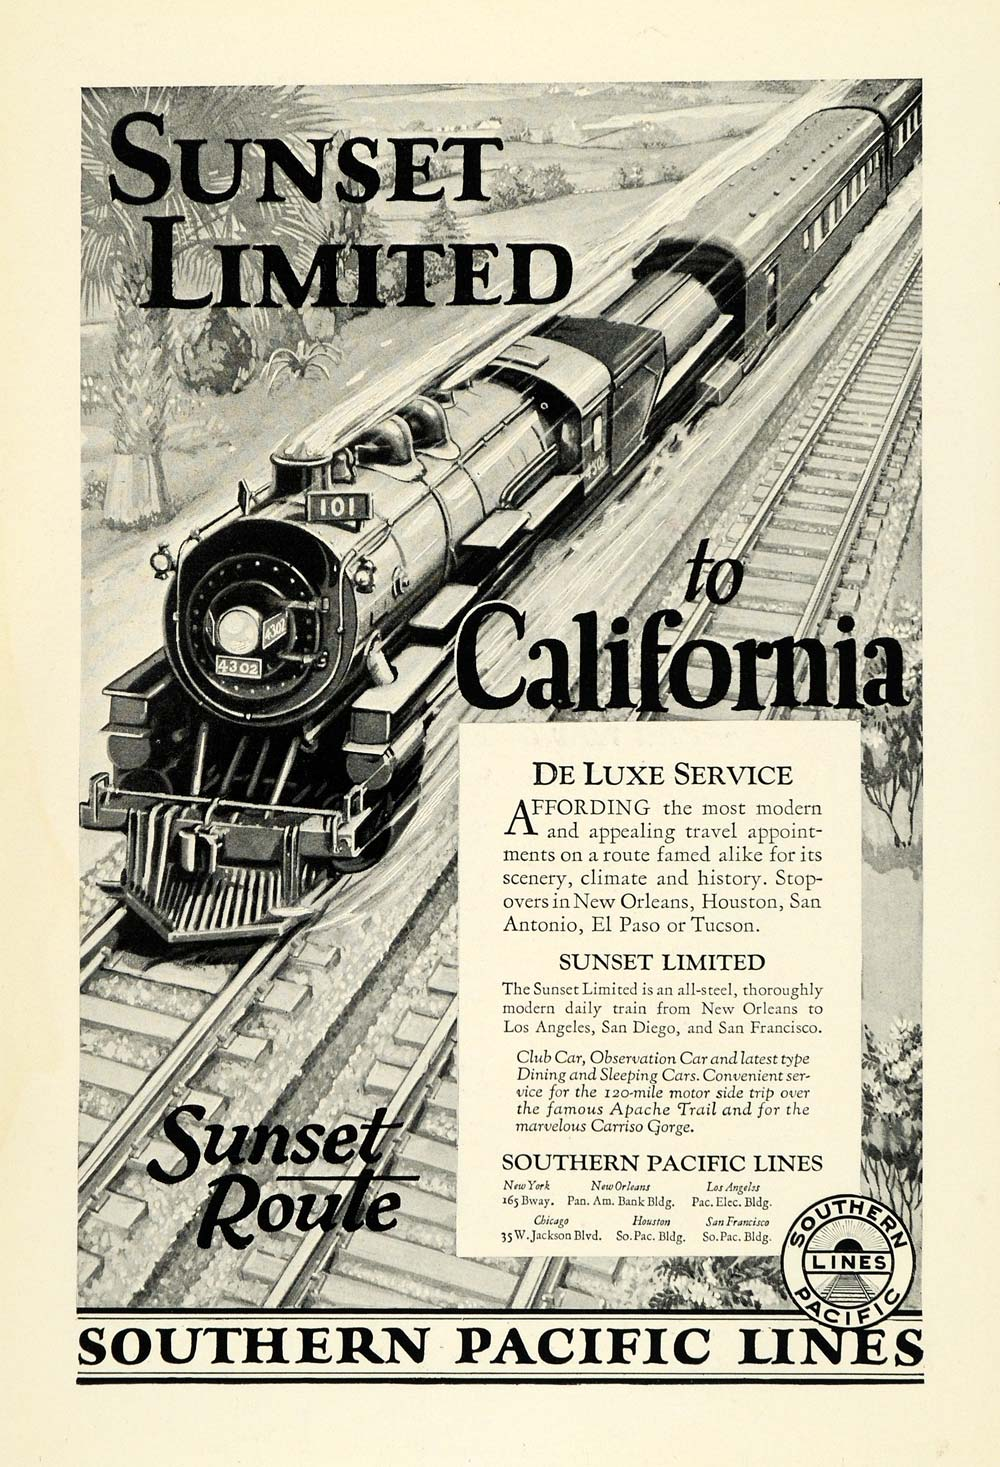 1926 Ad Southern Pacific Lines Sunset Route Train Rail Tracks Travel NGM1